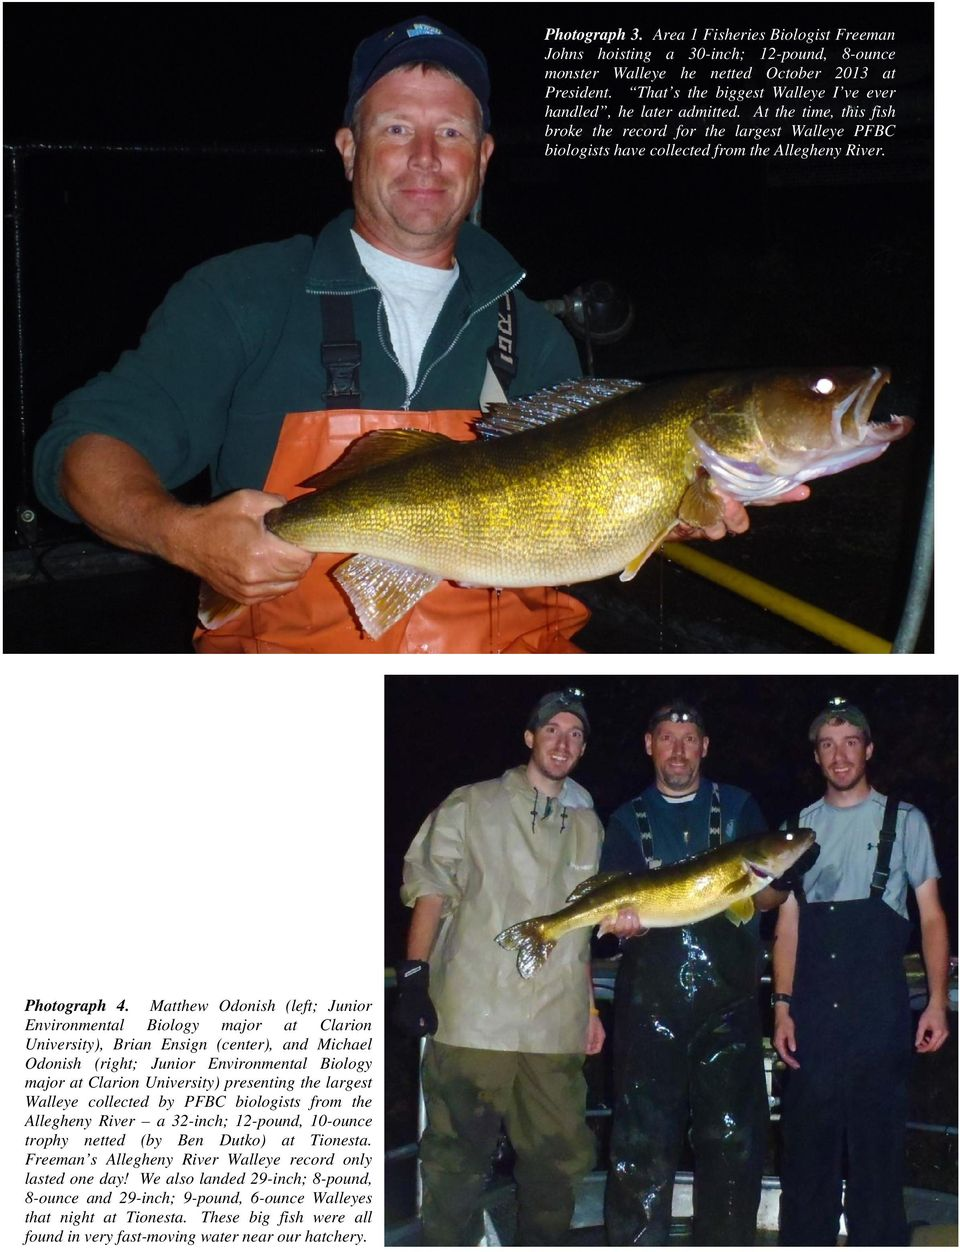 presenting the largest Walleye collected by PFBC biologists from the Allegheny River a 32-inch; 12-pound, 10-ounce trophy netted (by Ben Dutko) at Tionesta.